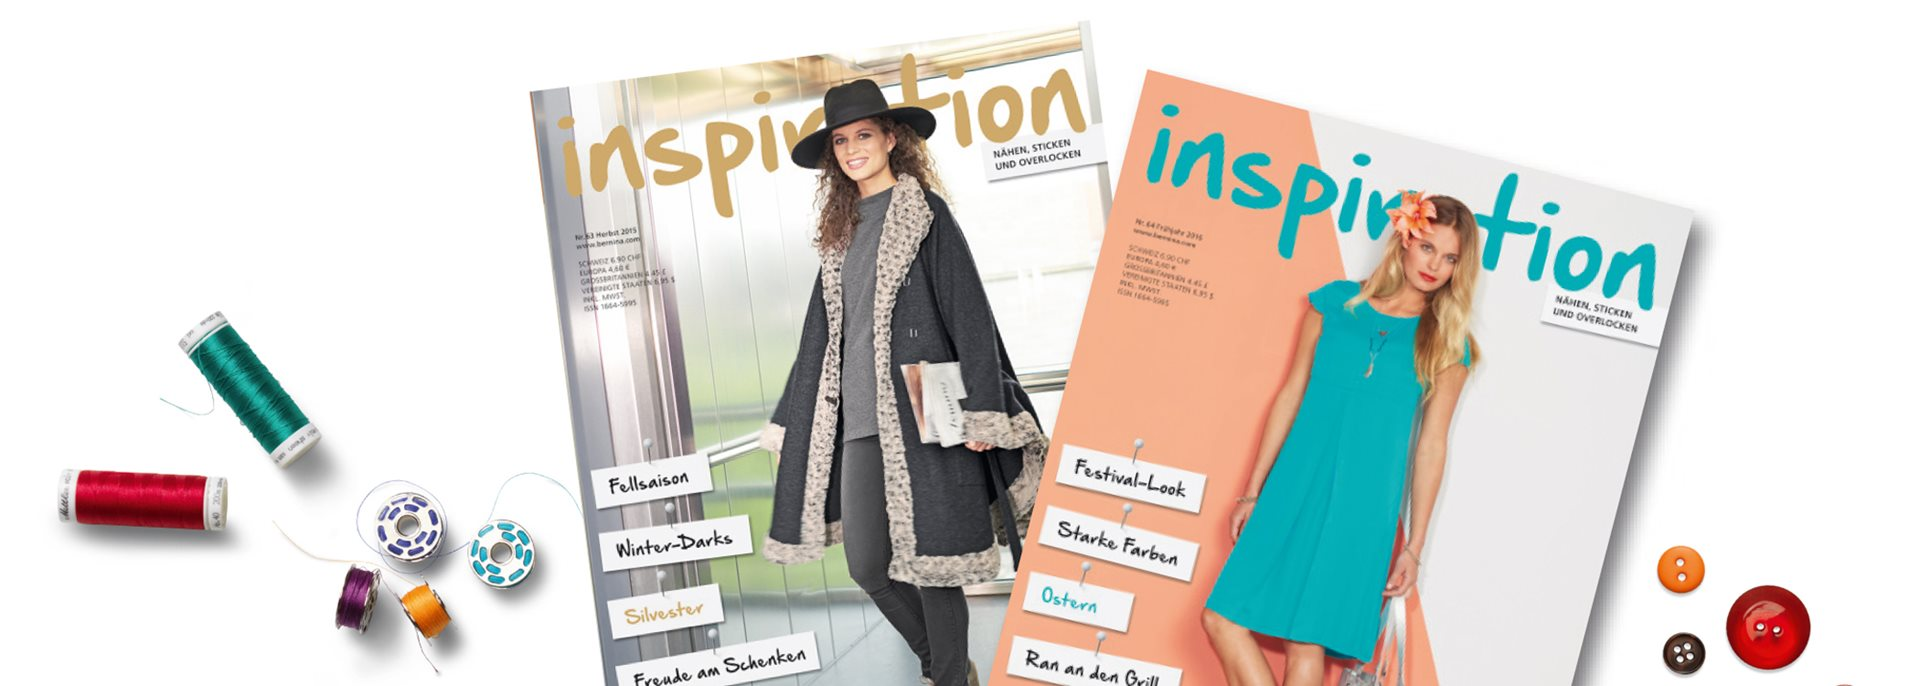 Picture: Inspiration Issue 51